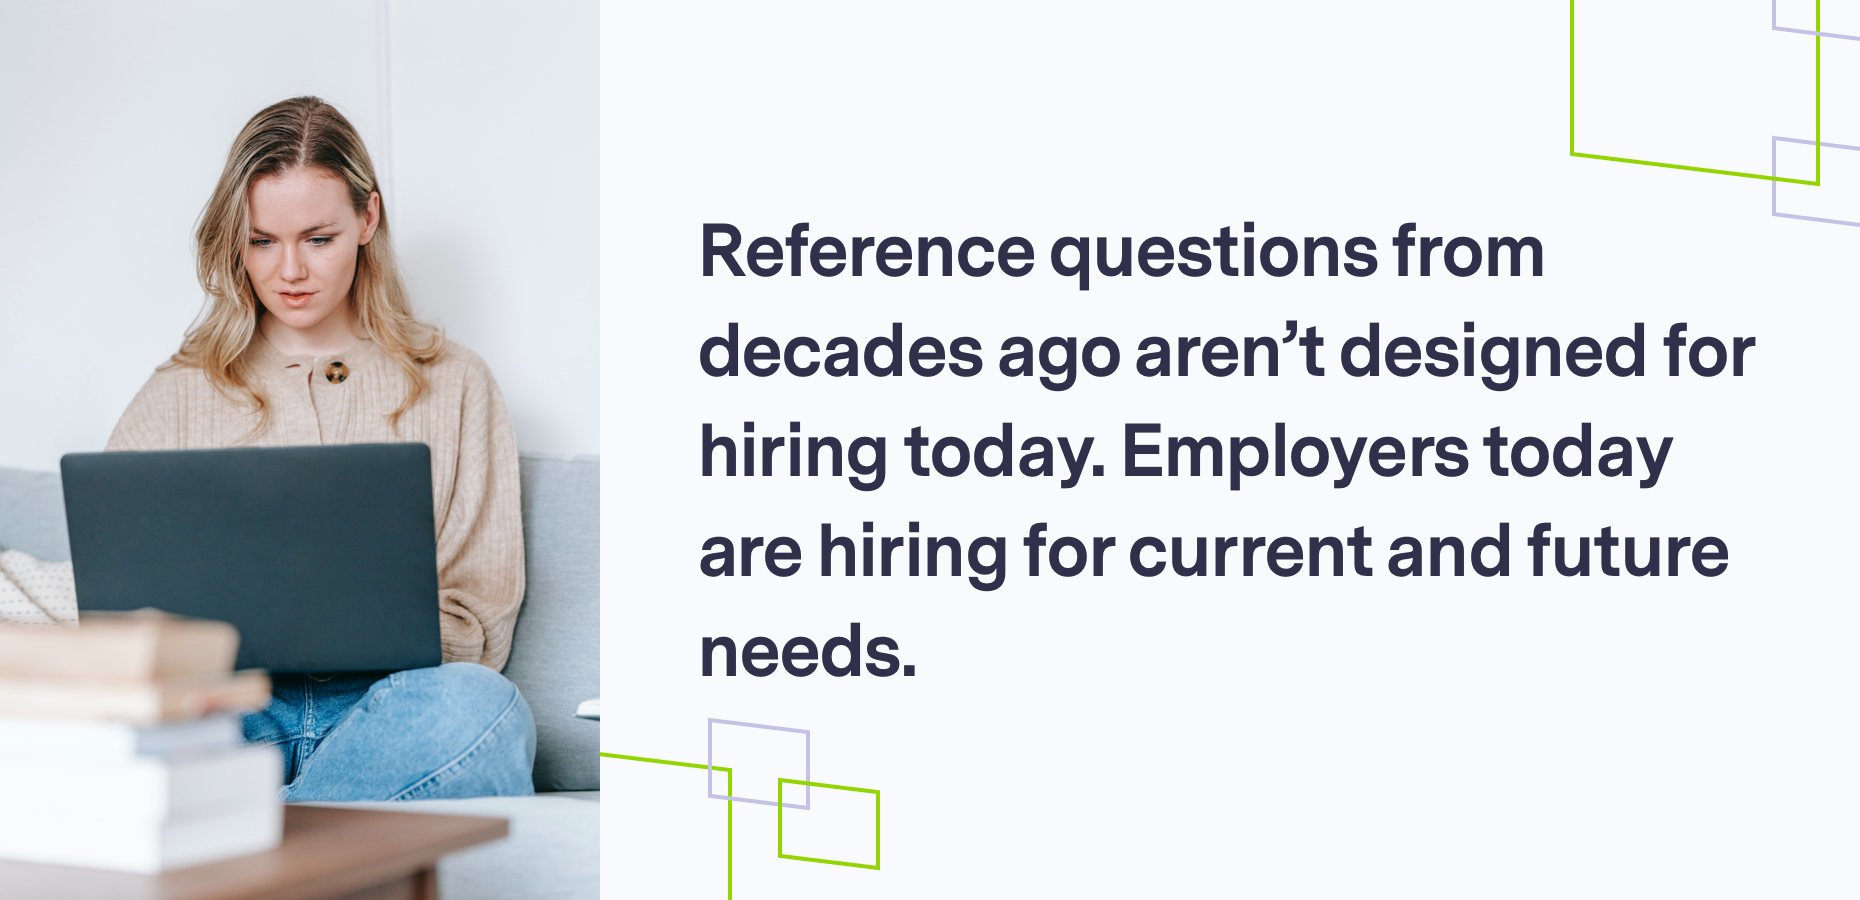 Employers are hiring for the future